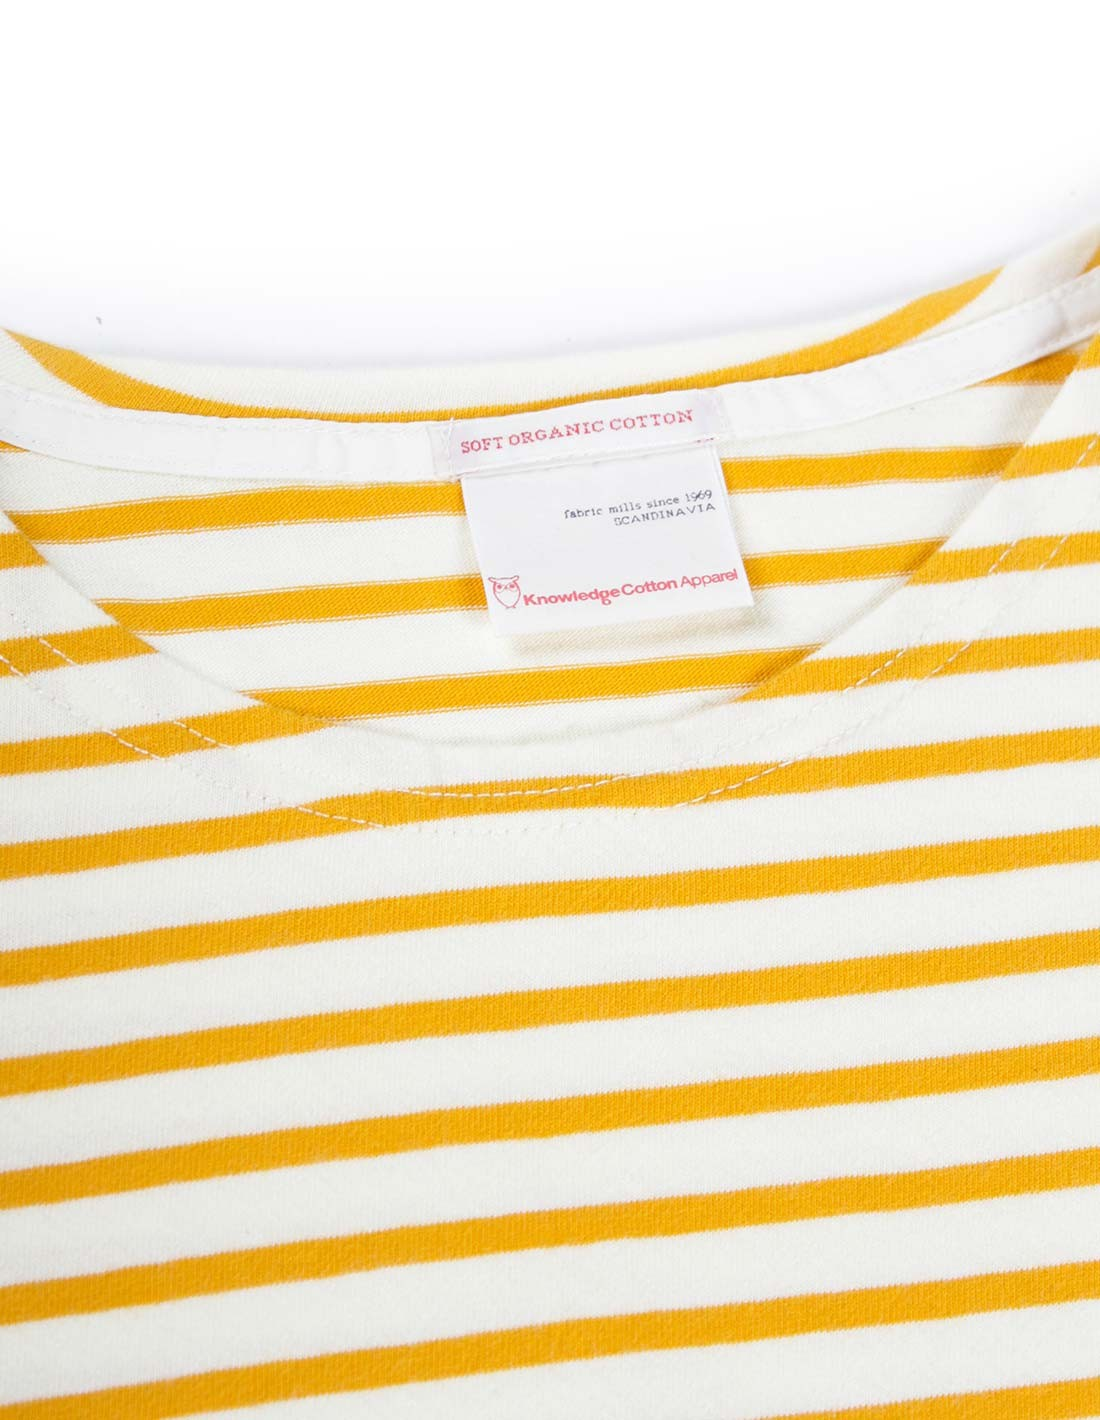 Knowledge Cotton Apparel Striped Tee in Yellow